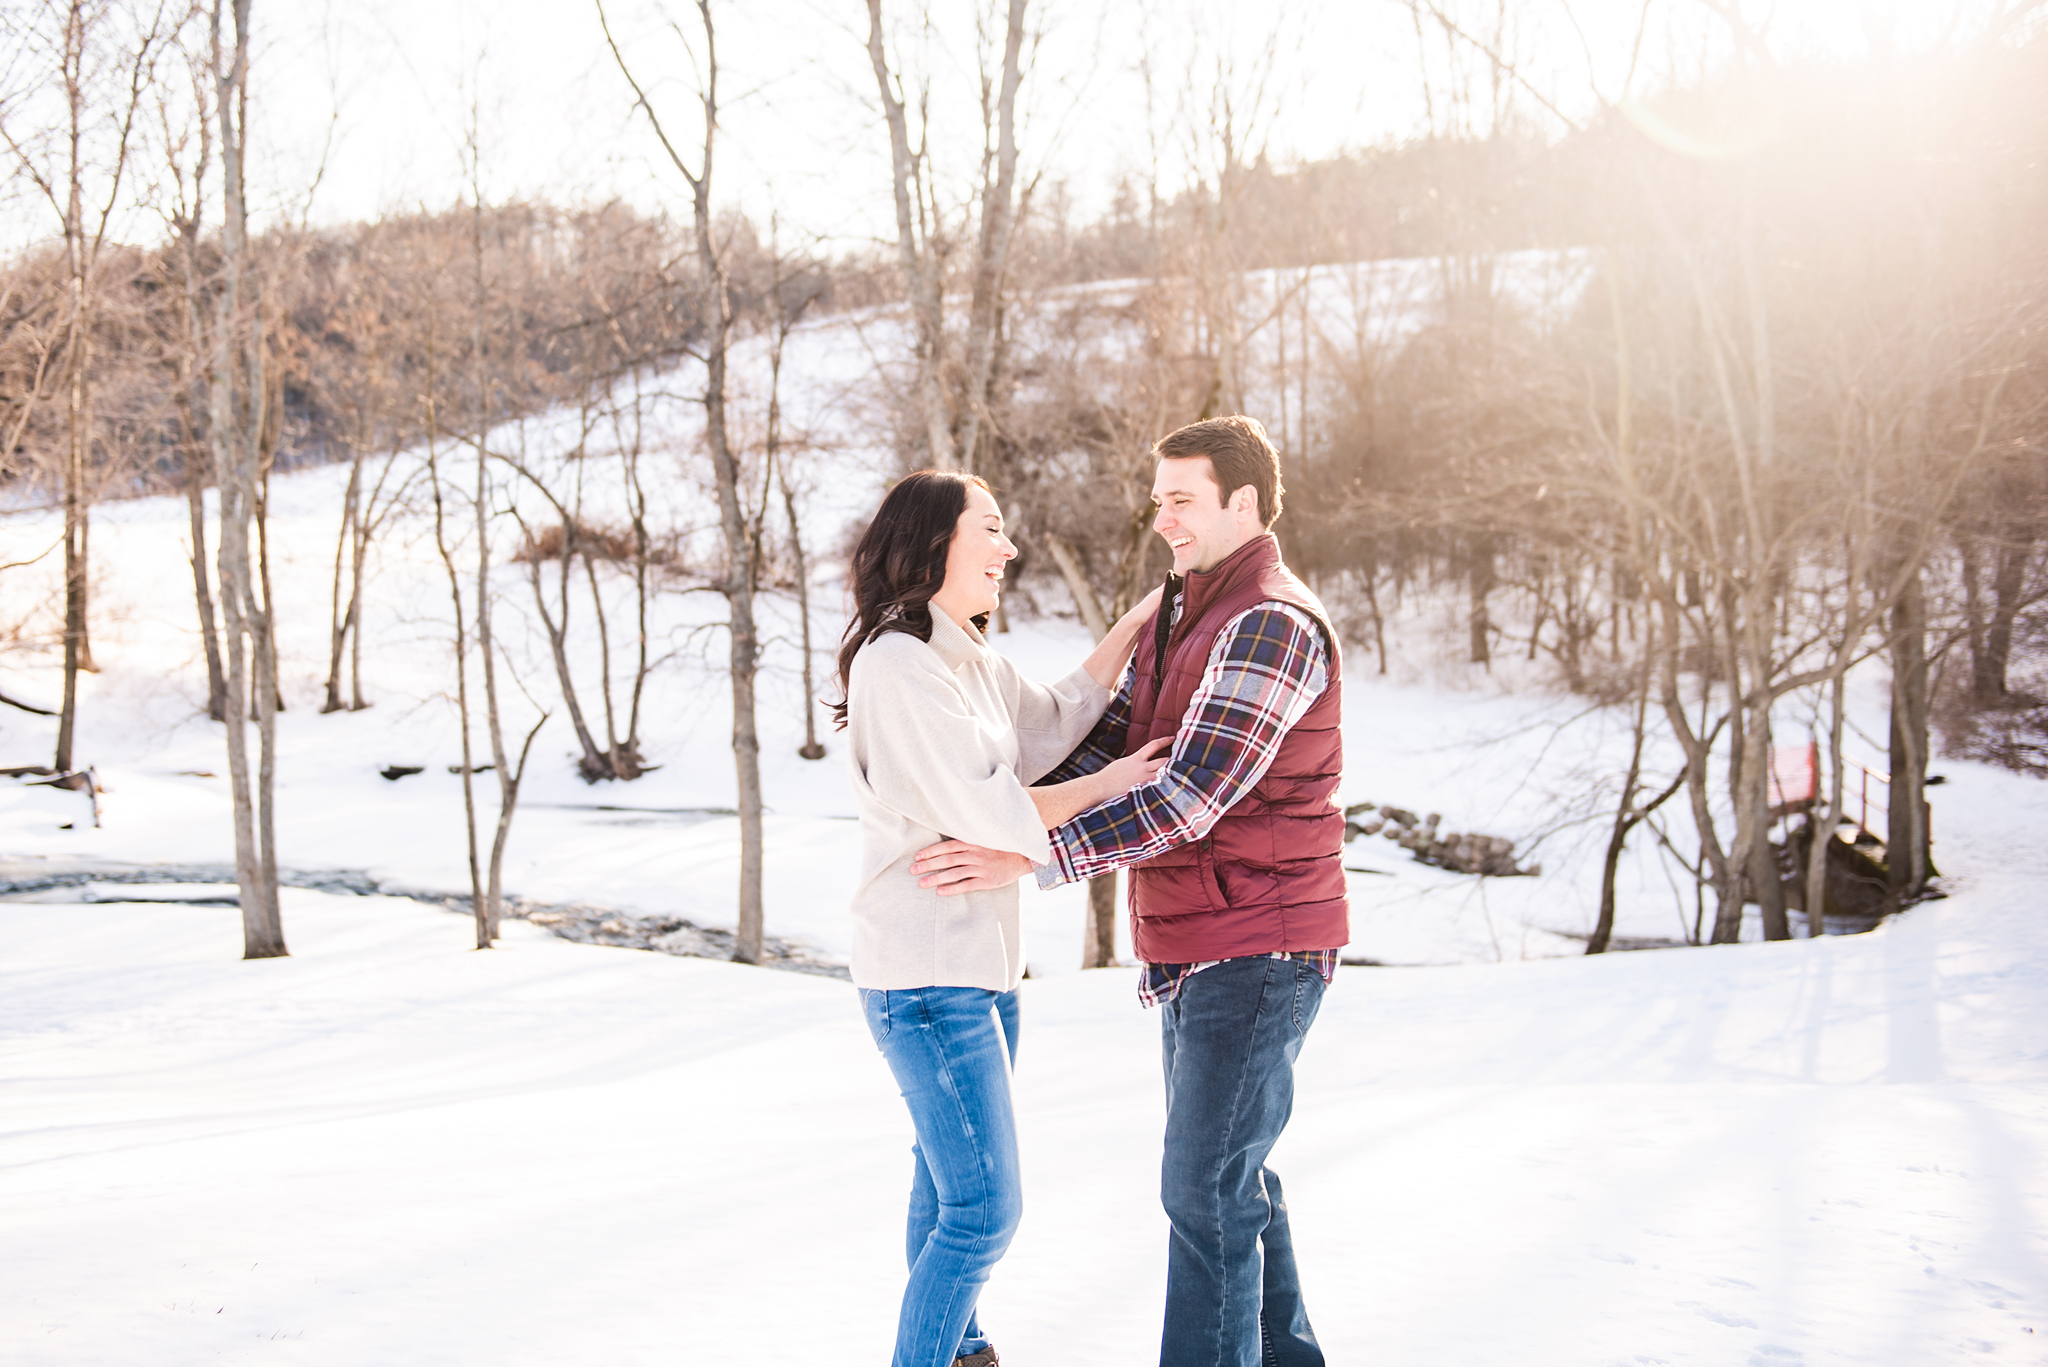 Fallbrook_Central_NY_Engagement_Session_JILL_STUDIO_Rochester_NY_Photographer_DSC_4686.jpg